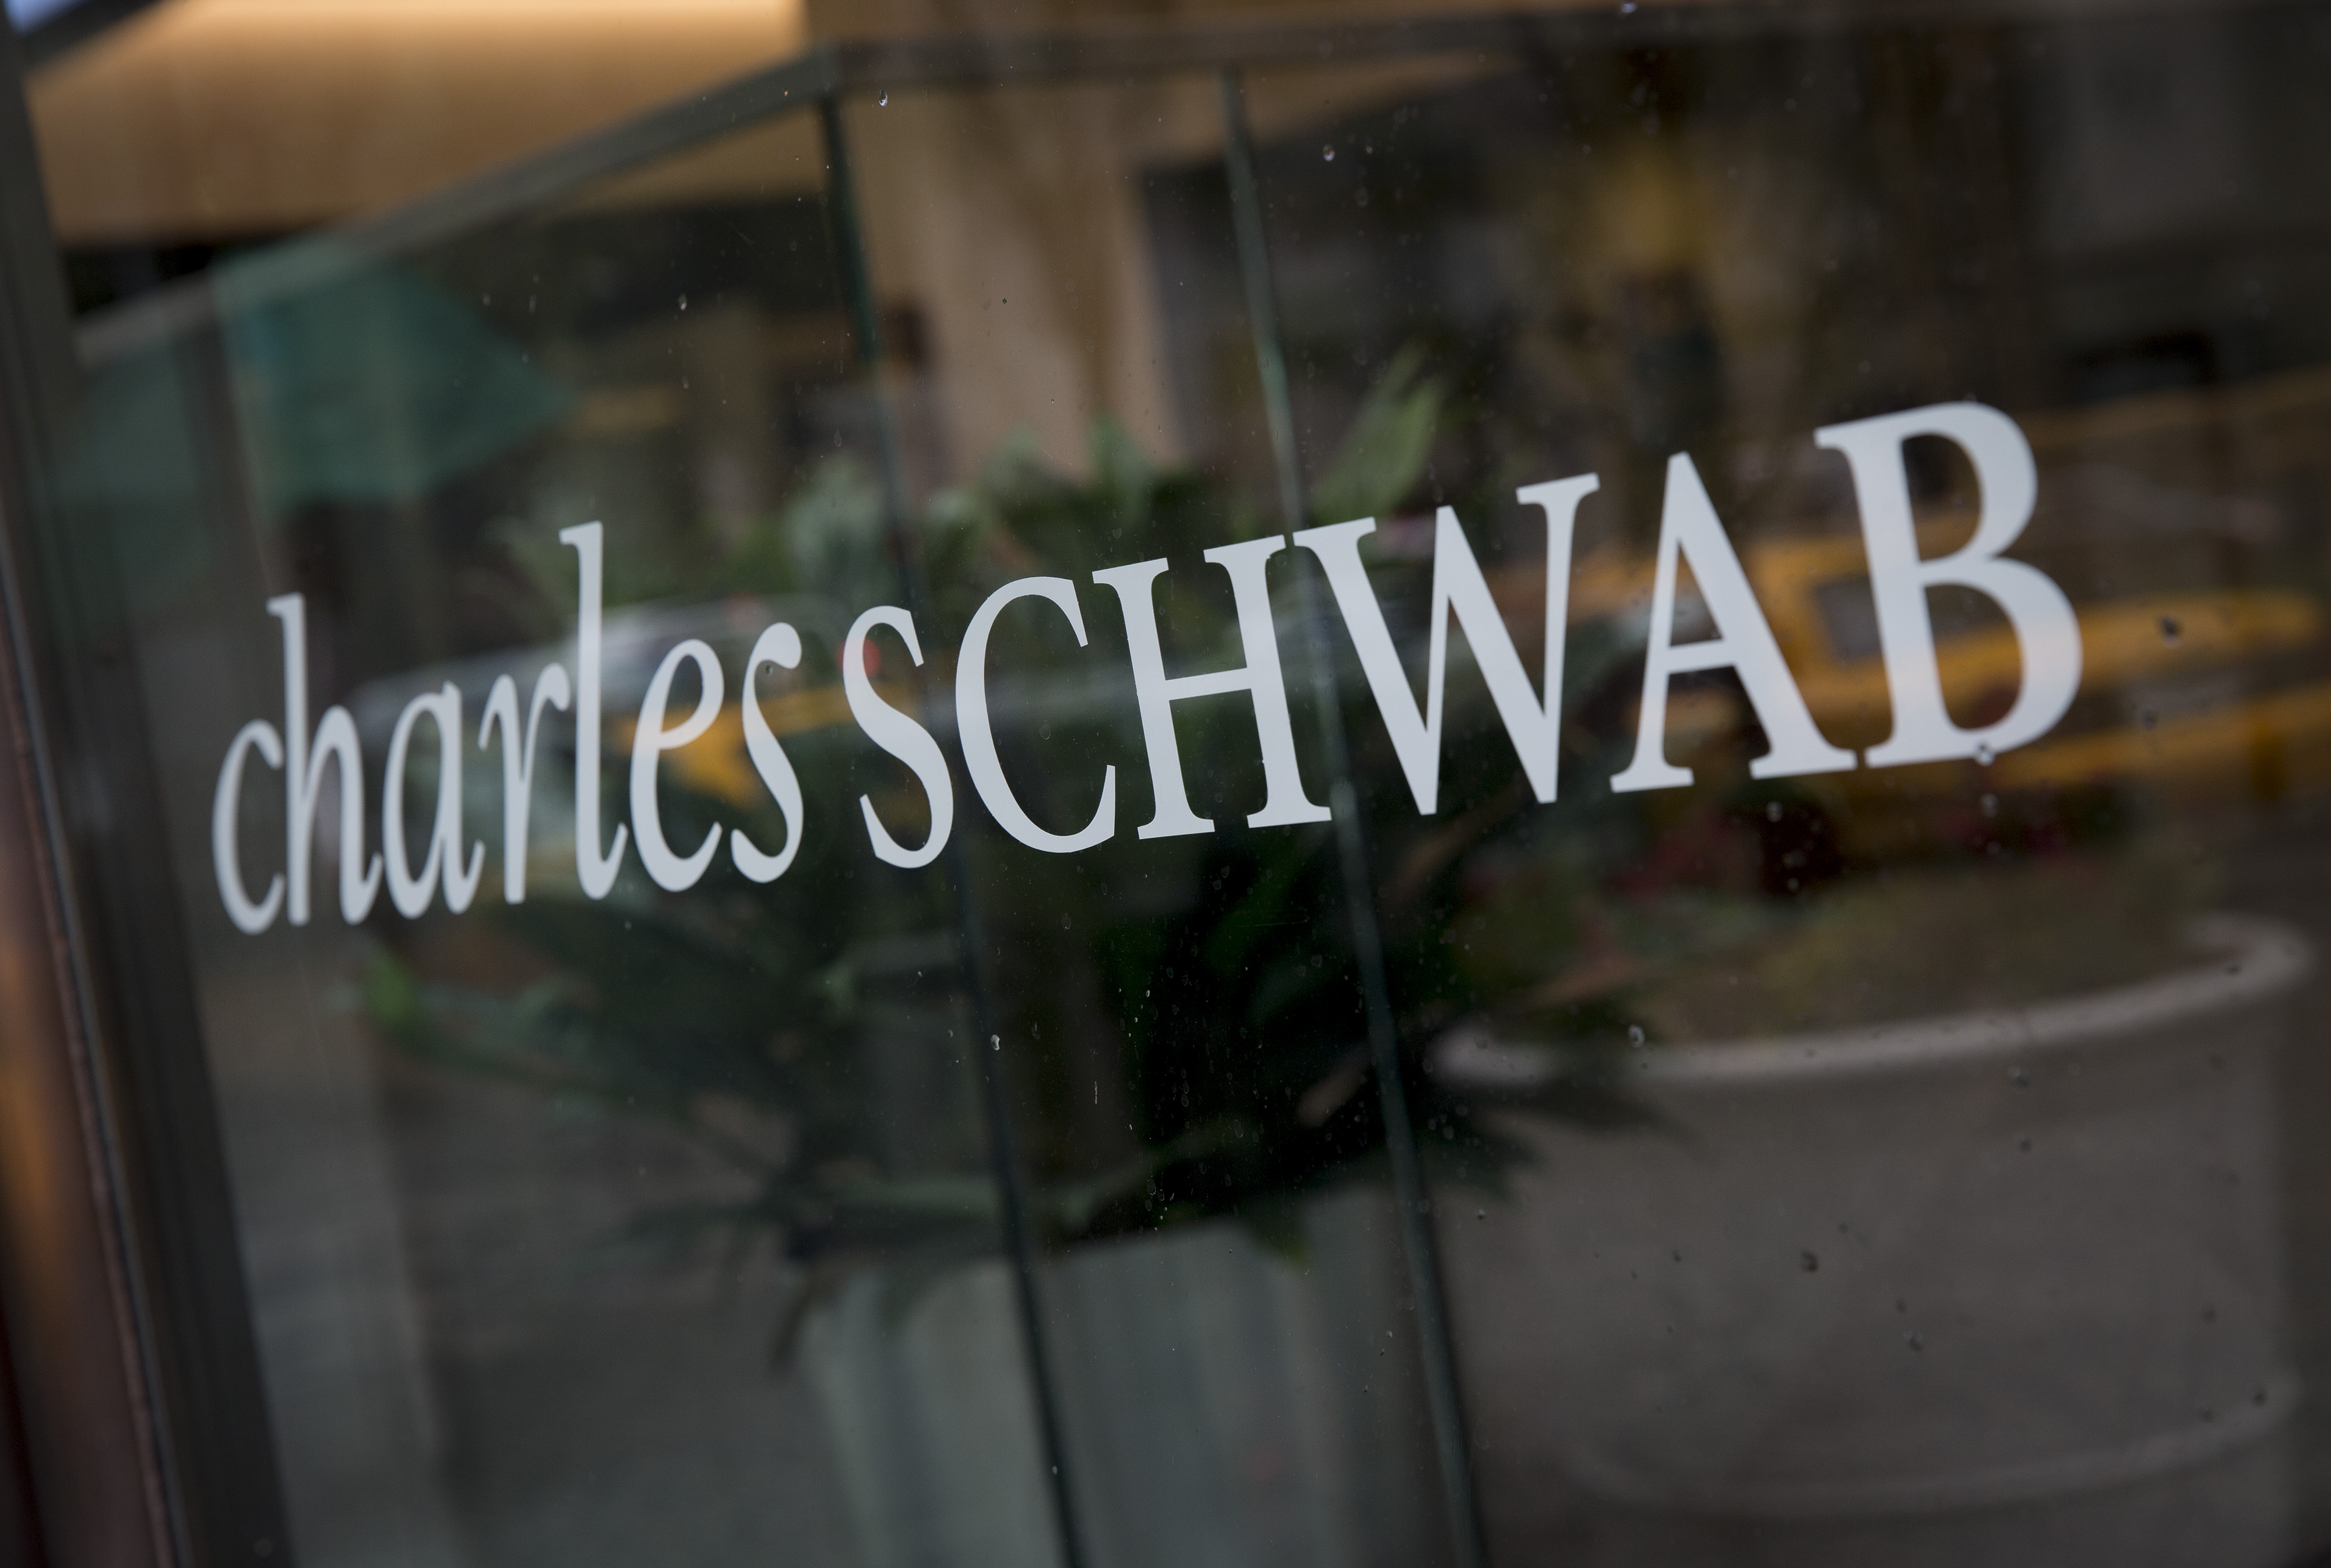 https://assets.sourcemedia.com/a0/ac/e2b14c234707a4524aa635e35091/charles-schwab-window-bloomberg-news.jpg